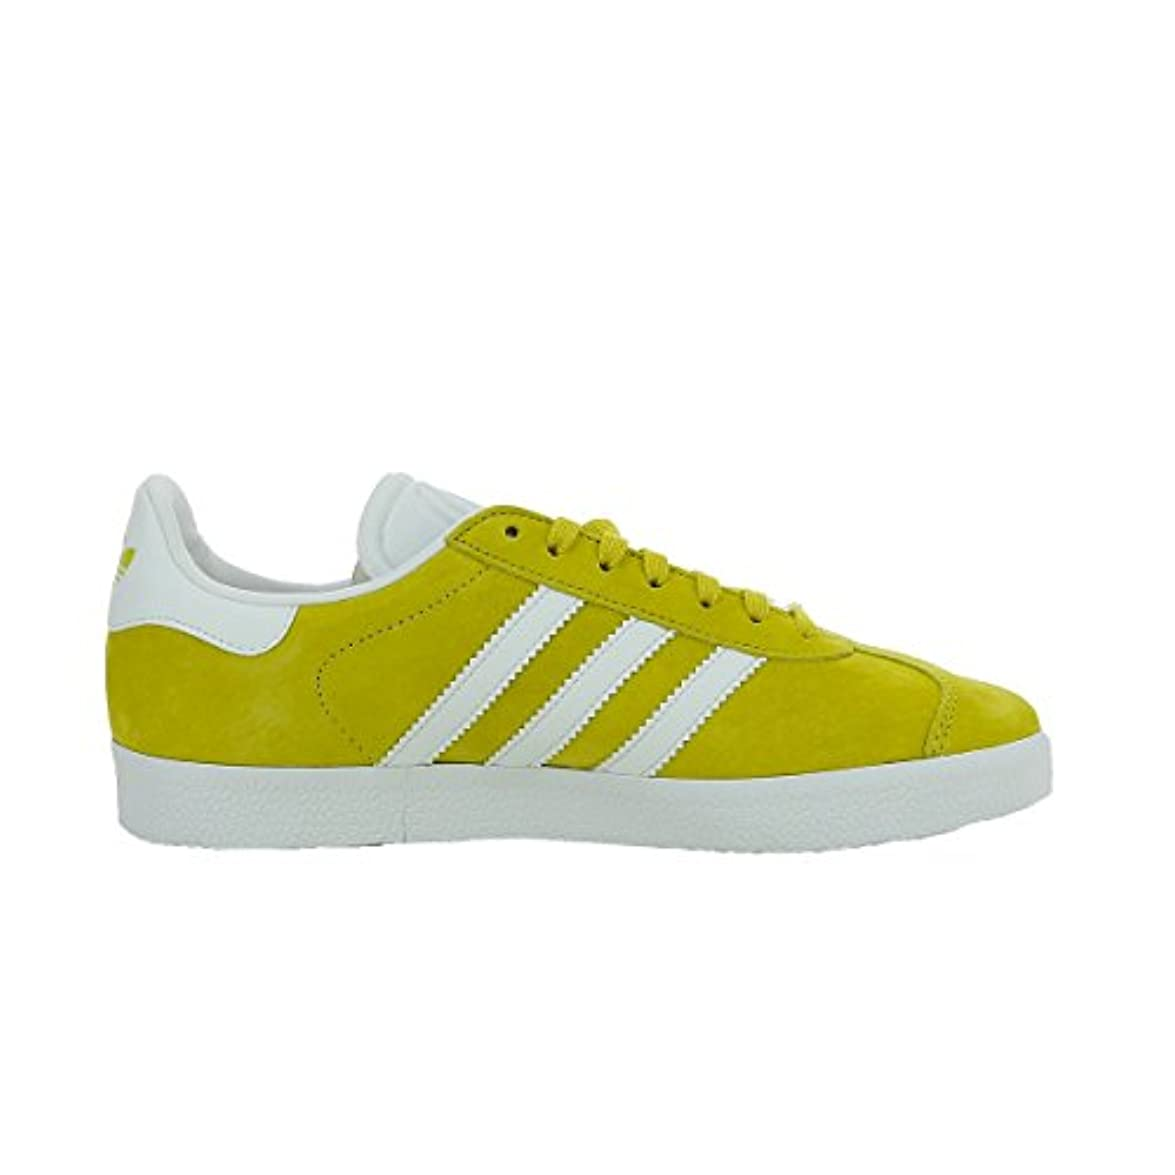 Adidas Swift Run Scarpe Da Ginnastica Basse Donna